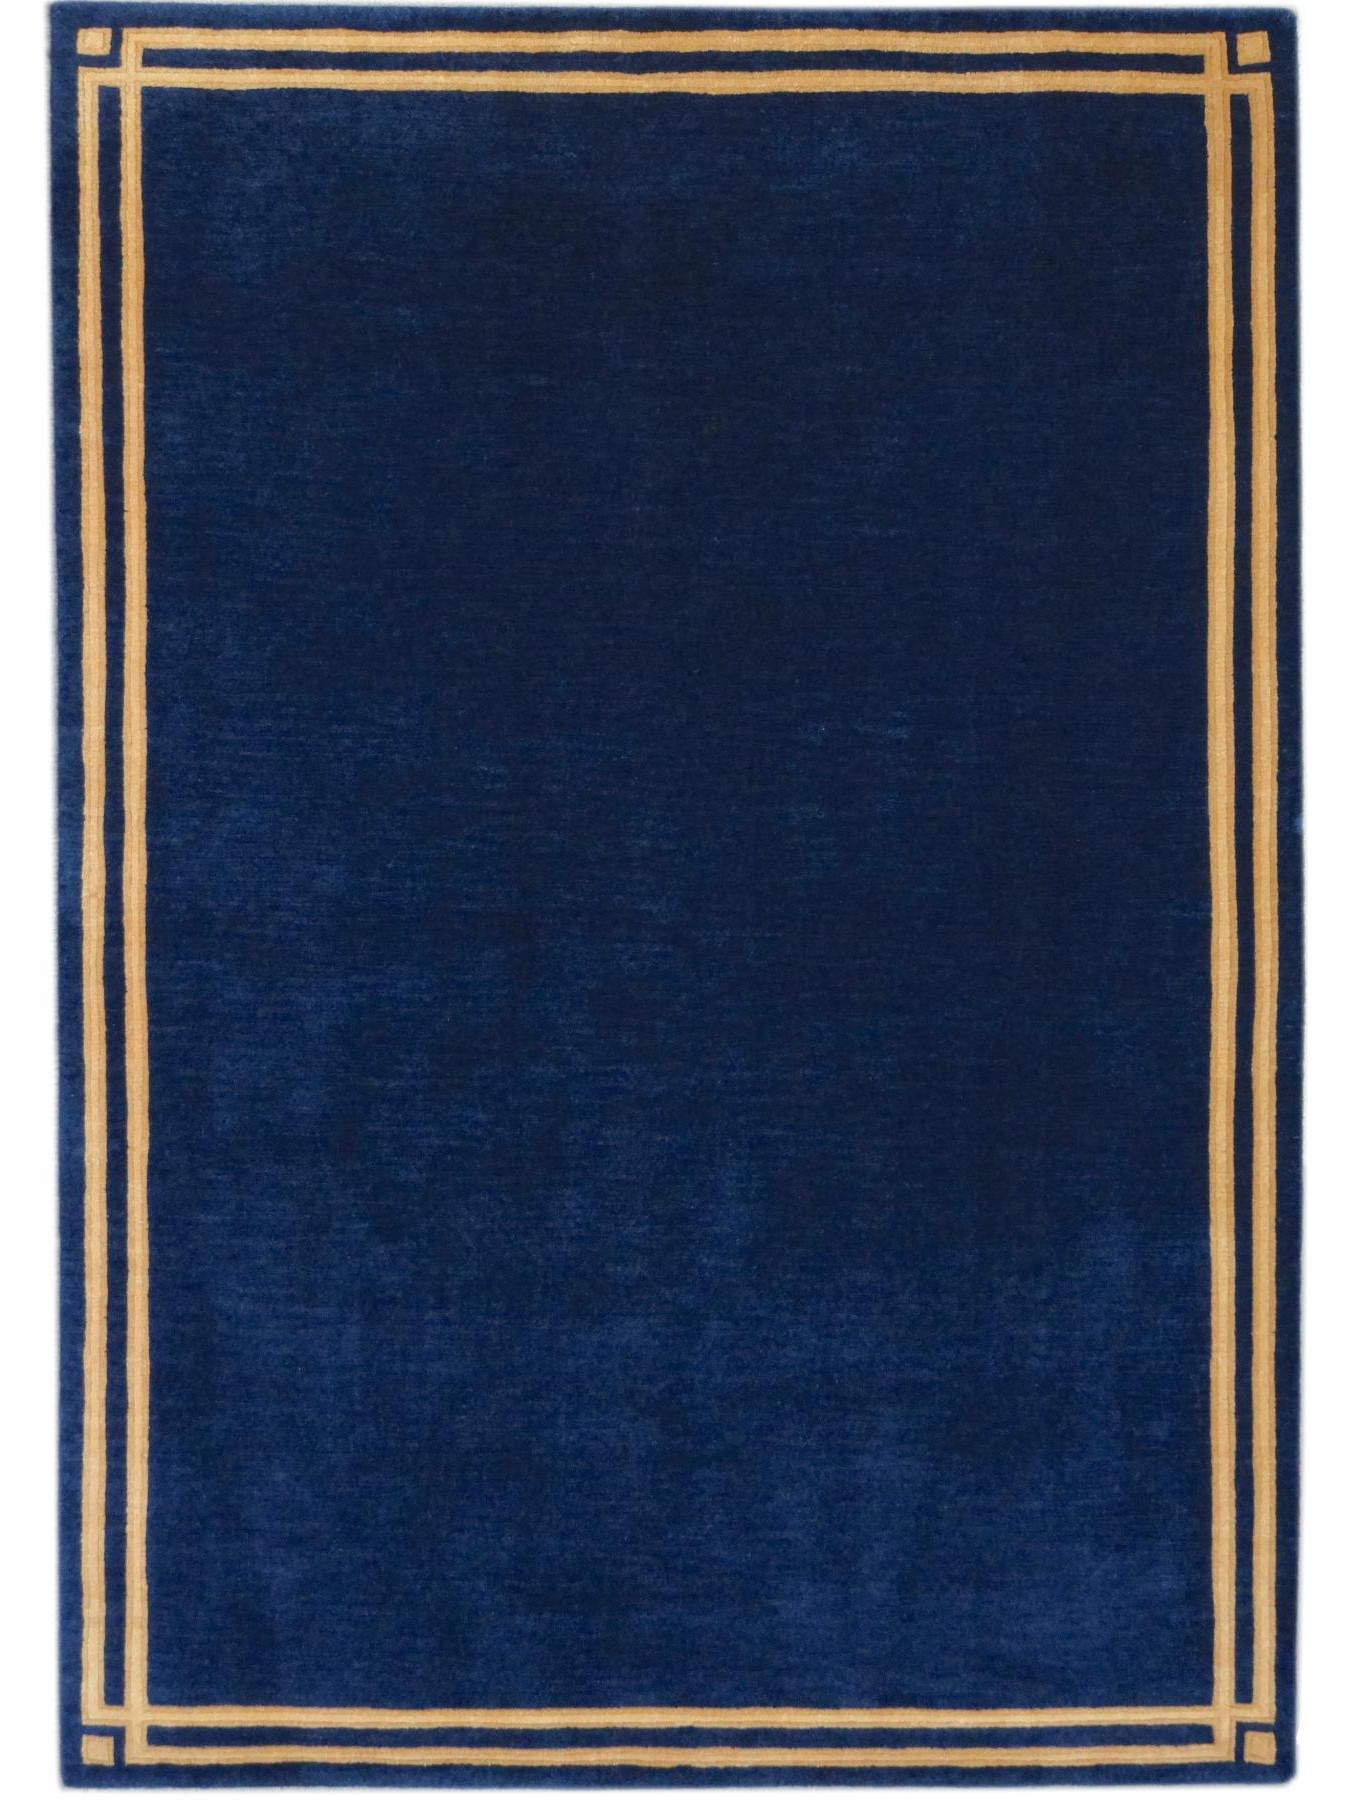 Carpets with borders - ART DECO 301-7350